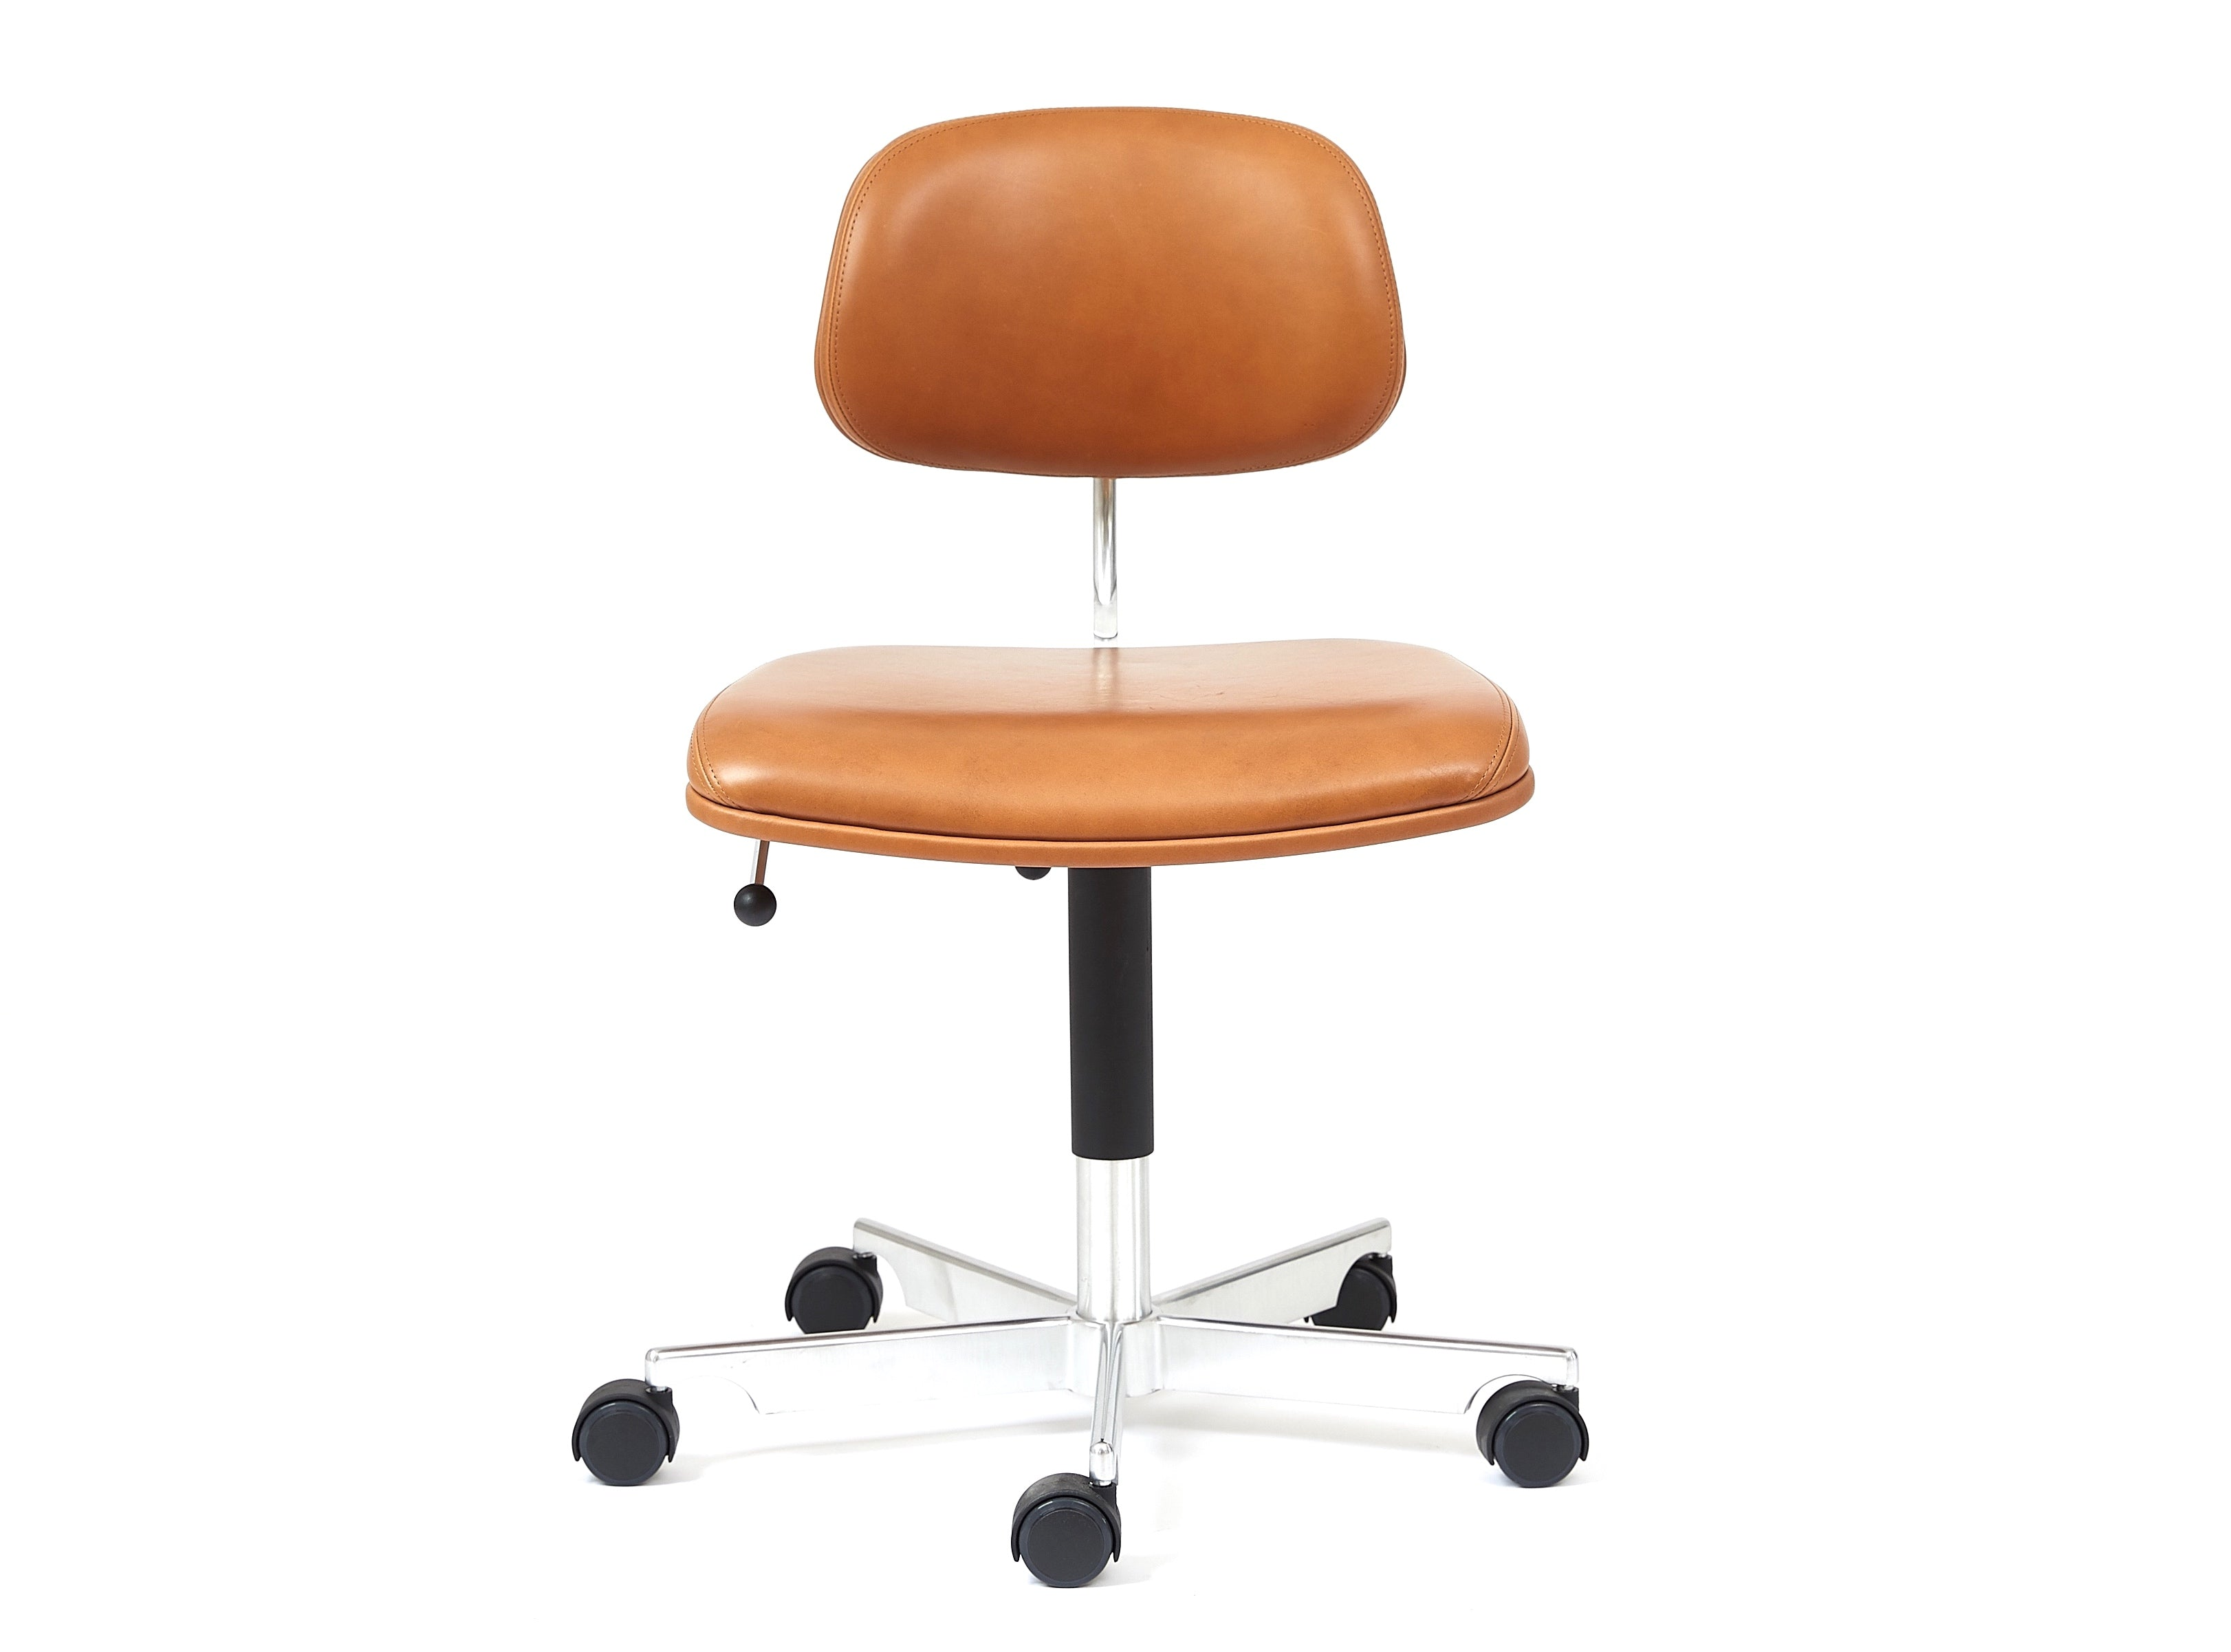 Subscription_OMNI_Kevi_2534U_All_Leather_office_chair_classic_four_legged_meeting_conference_room_comfortable_seat_luxury